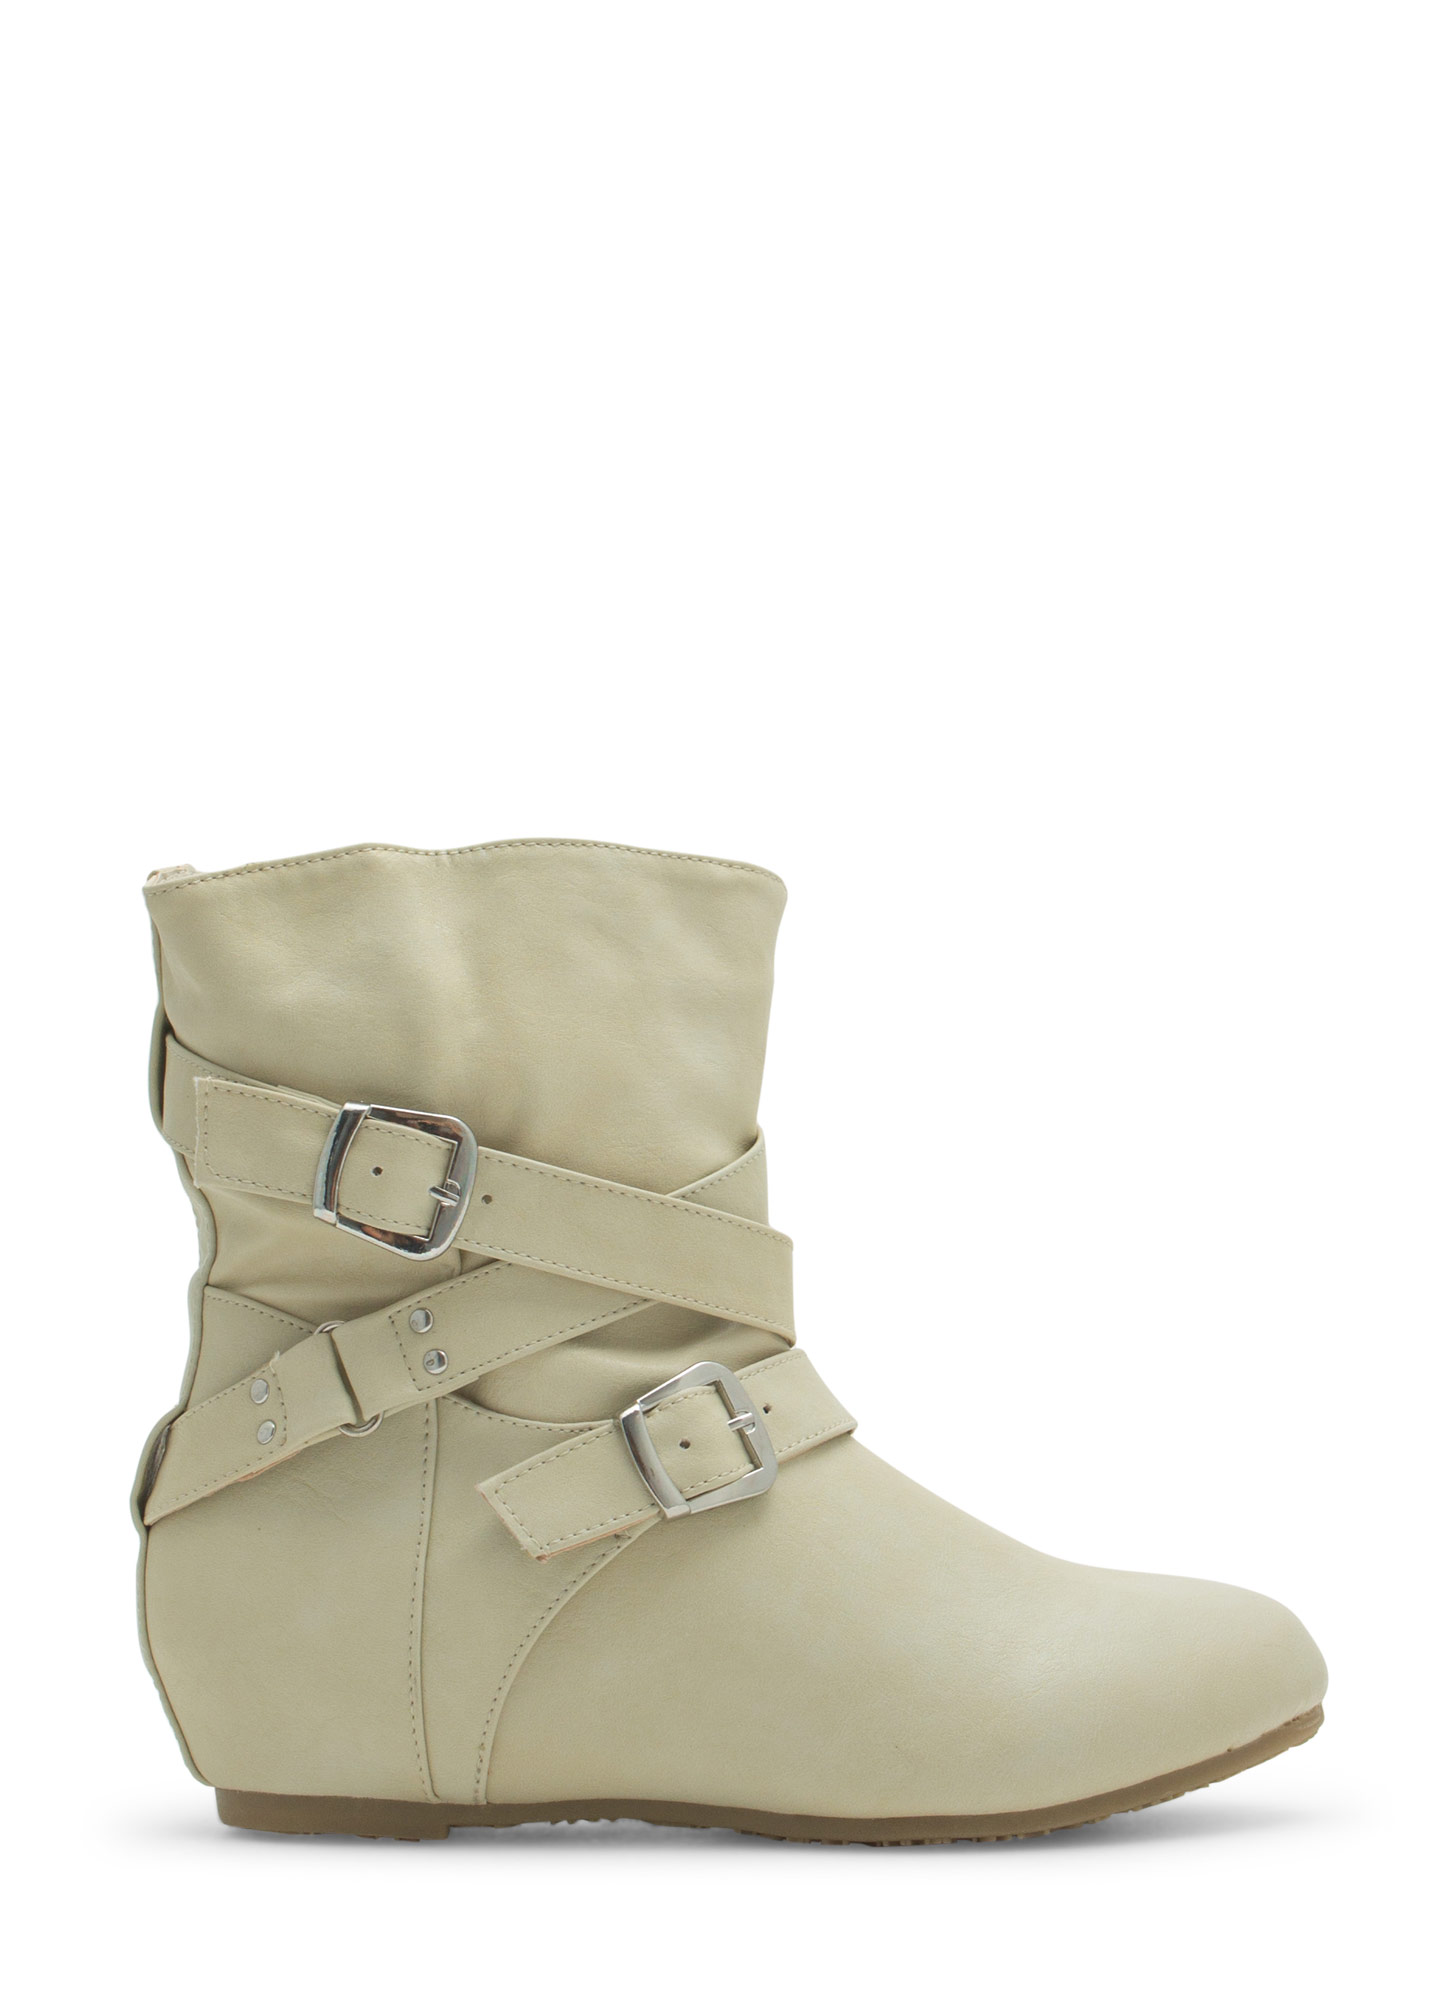 Faux Leather Low-Rise Buckled Boots PEARL